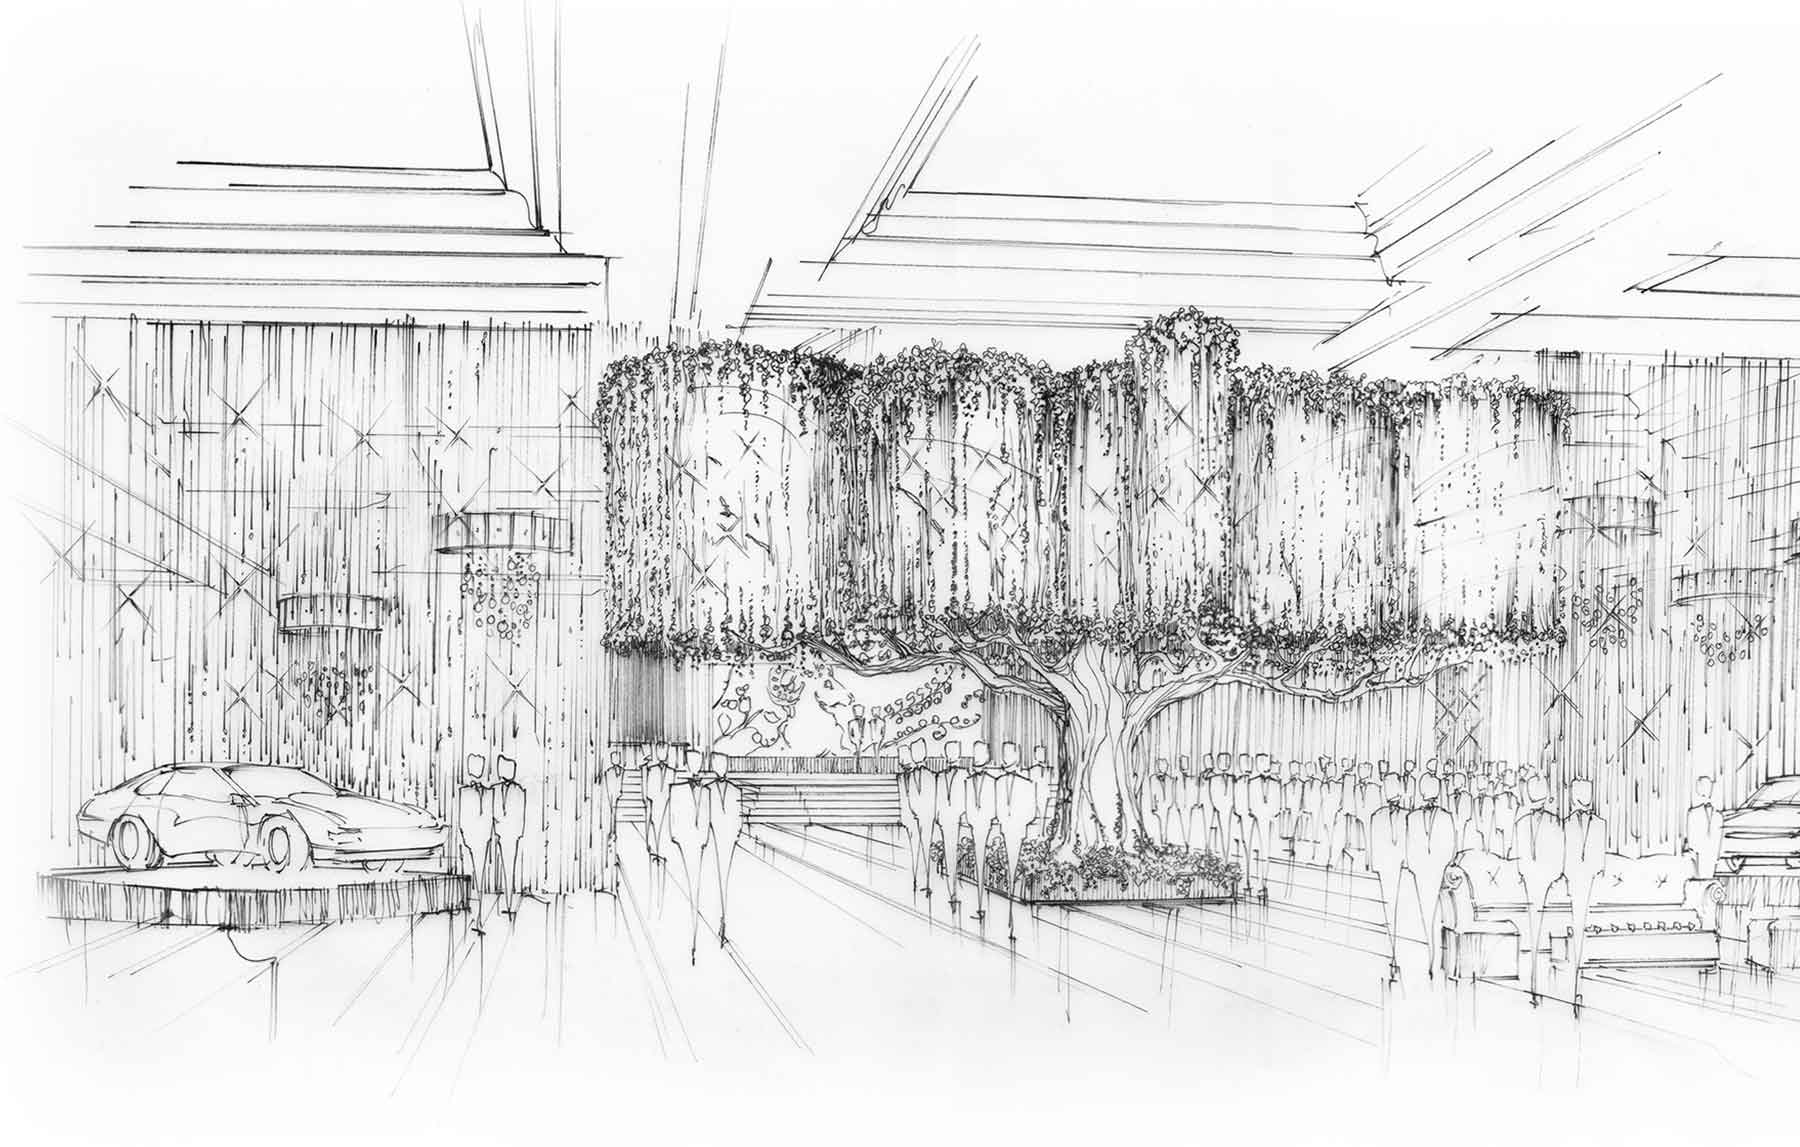 Artist's rendering of tree installation